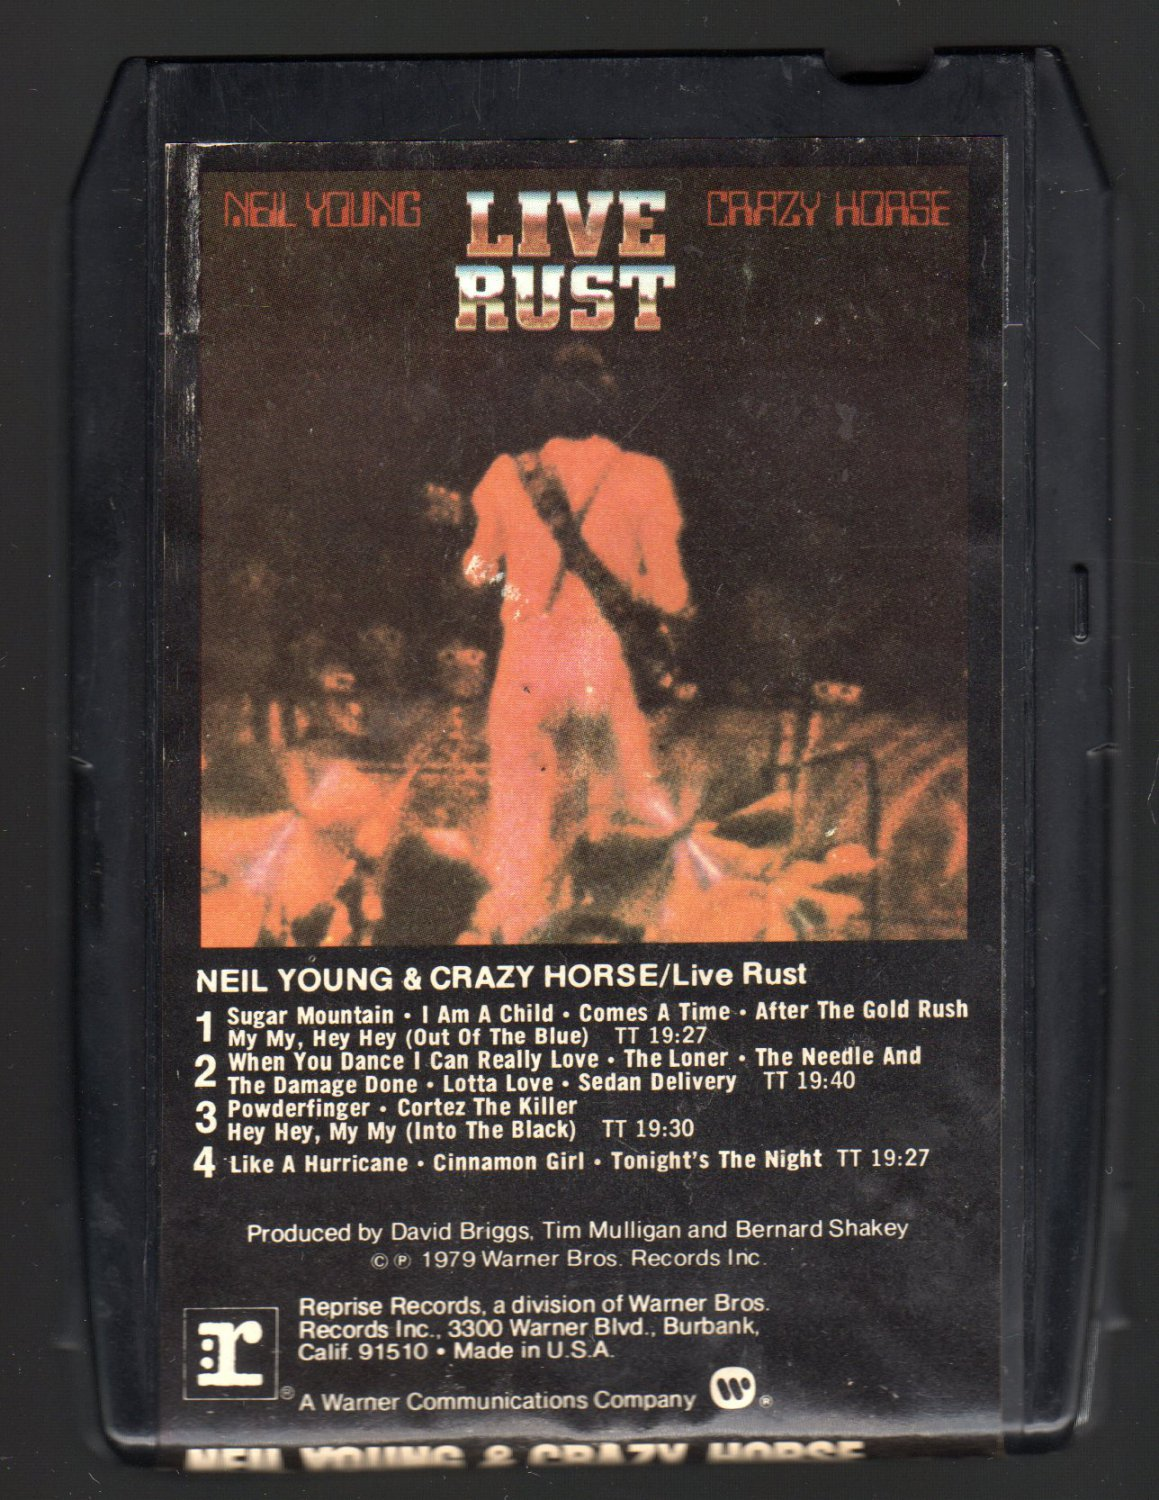 Neil Young - Live Rust 1979 WB A43 8-TRACK TAPE